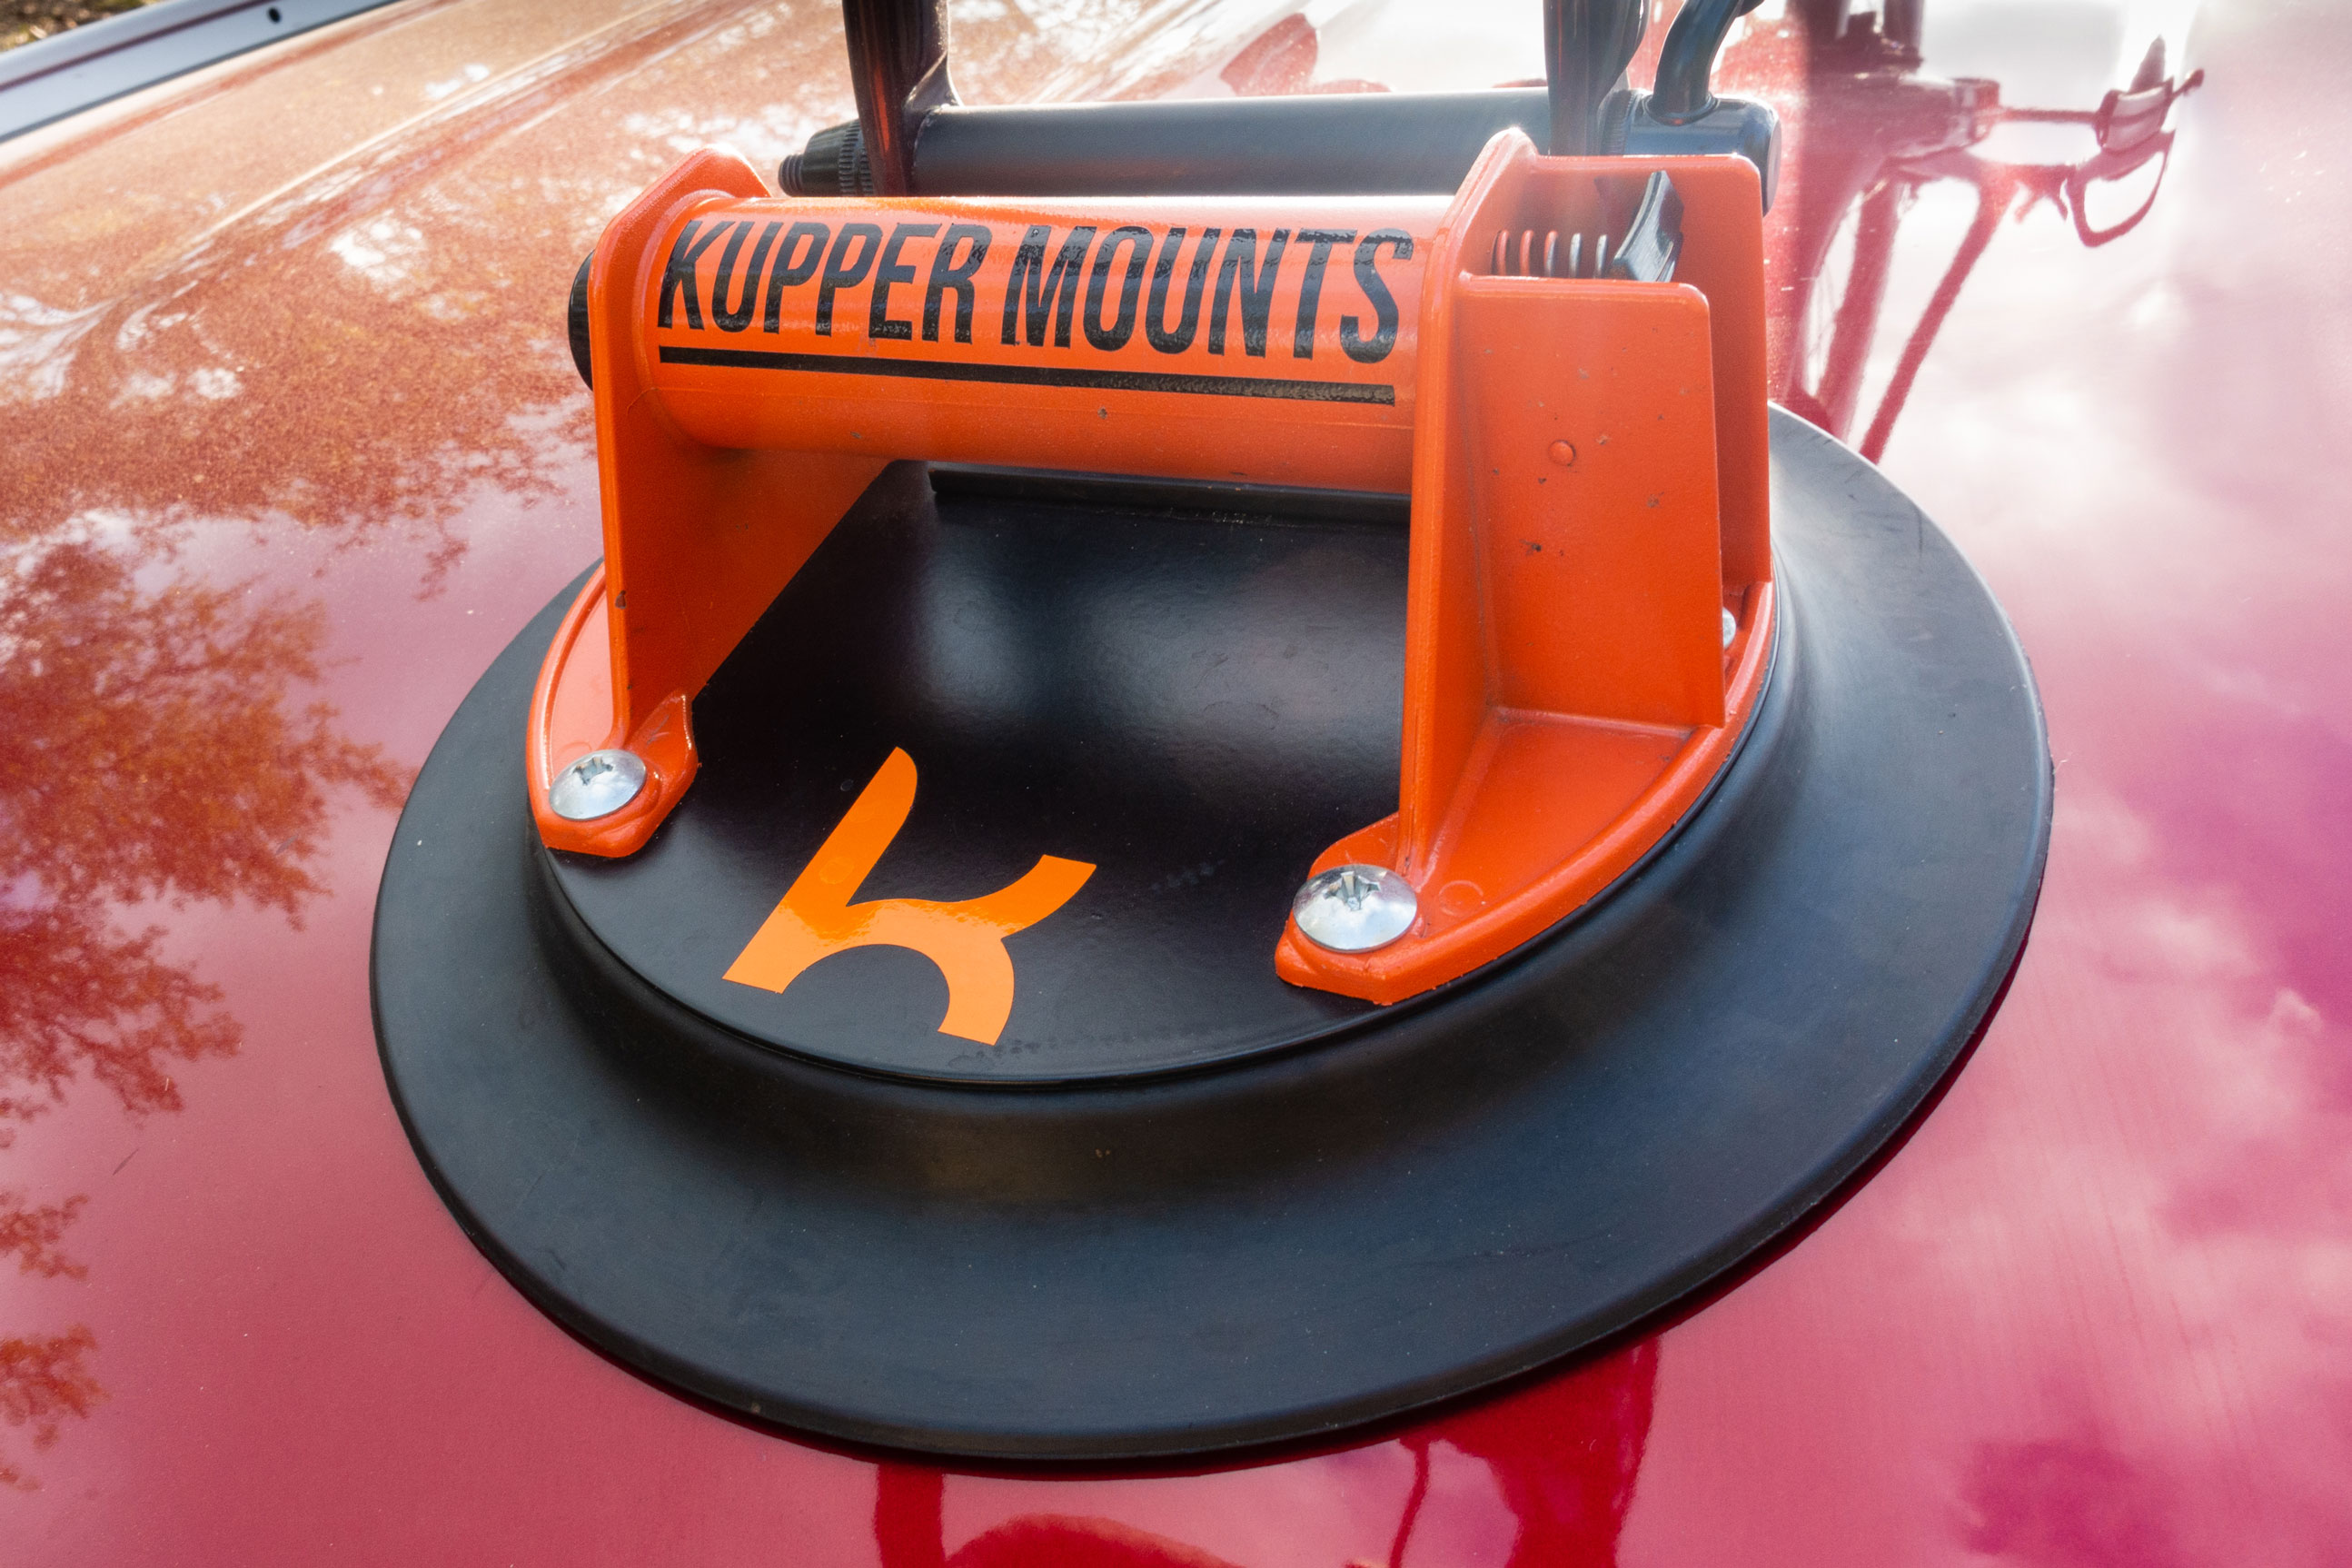 Kupper Mounts Bike Carrier suction cup